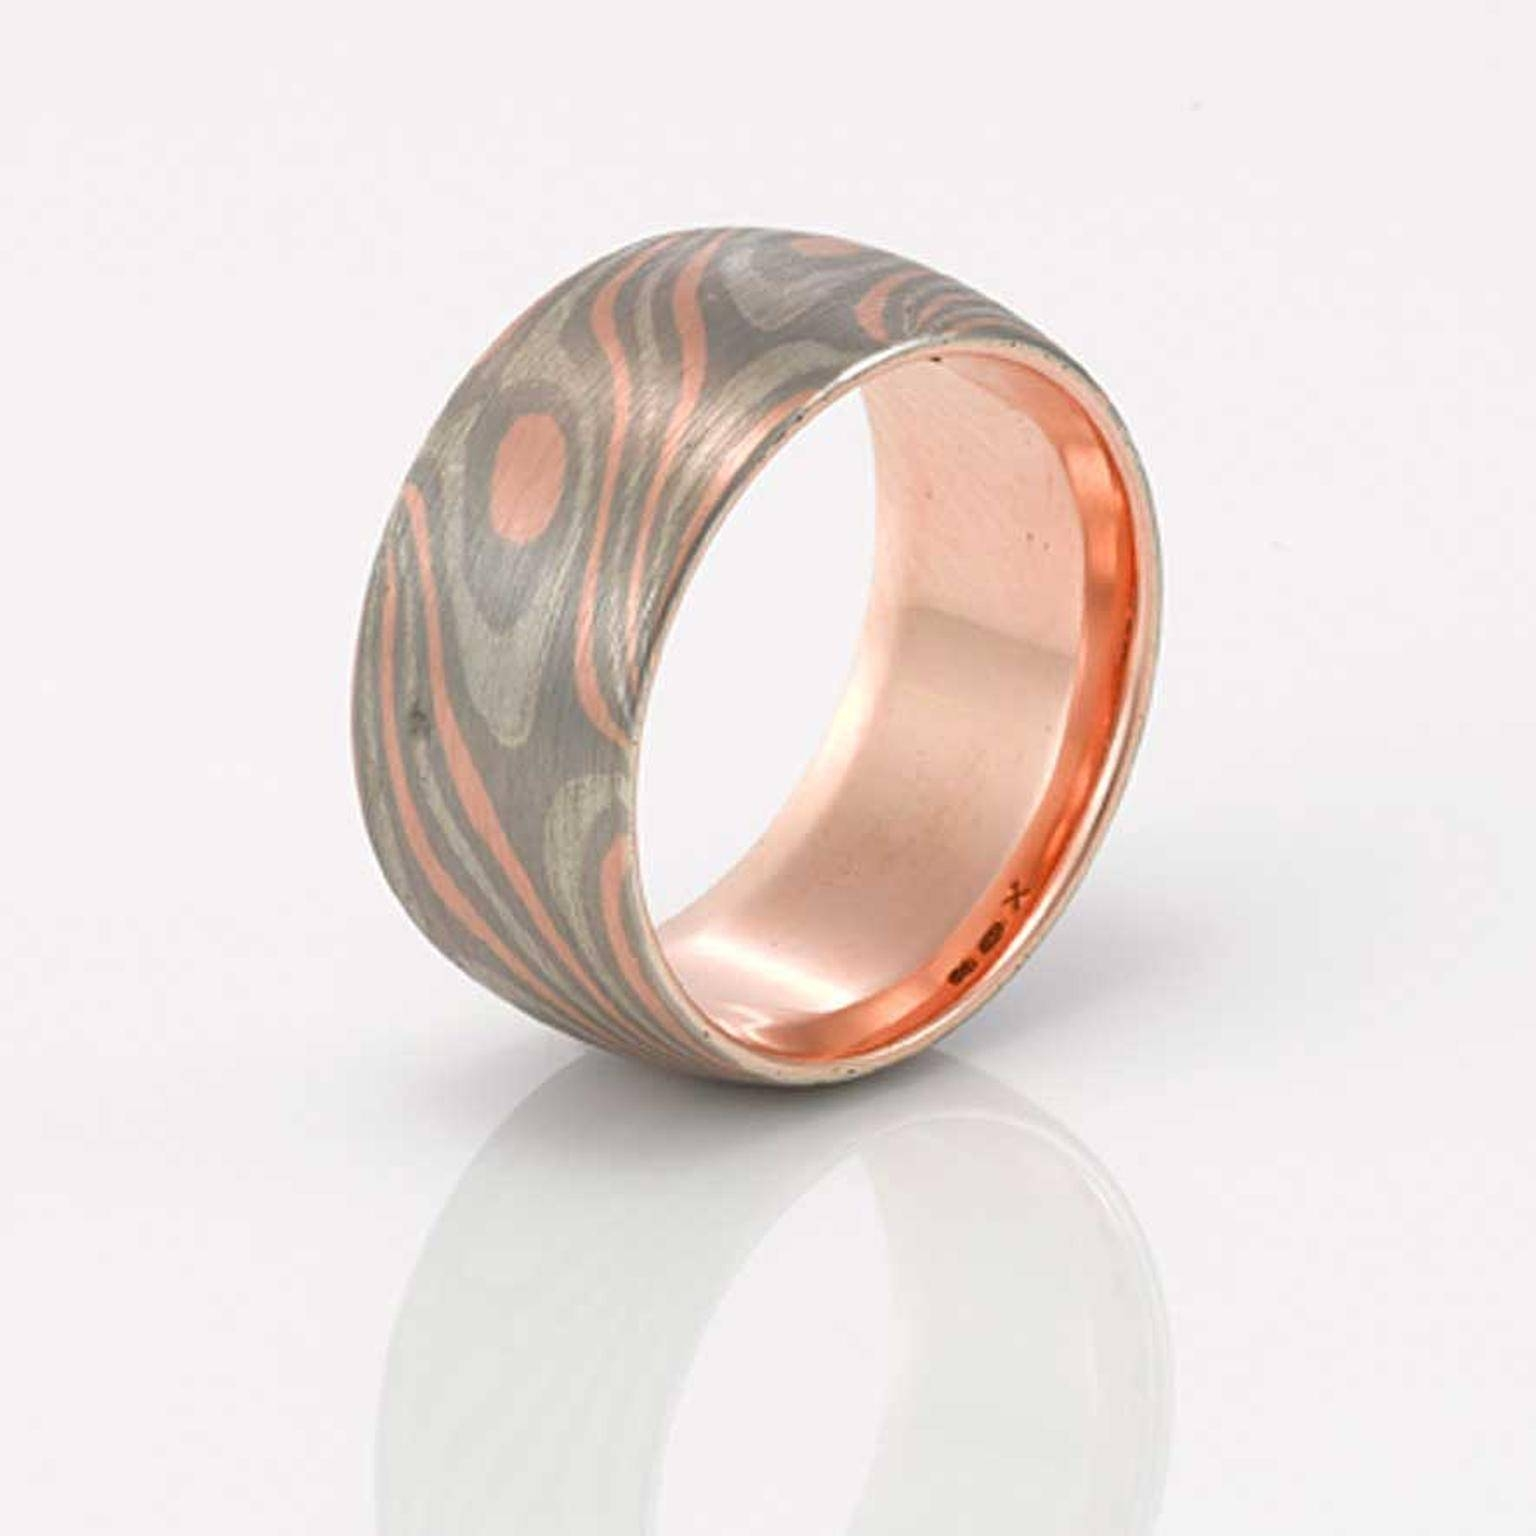 Apollo Men's Wedding Ring In Rose Gold, Palladium And Silver For Palladium Wedding Rings (View 1 of 15)